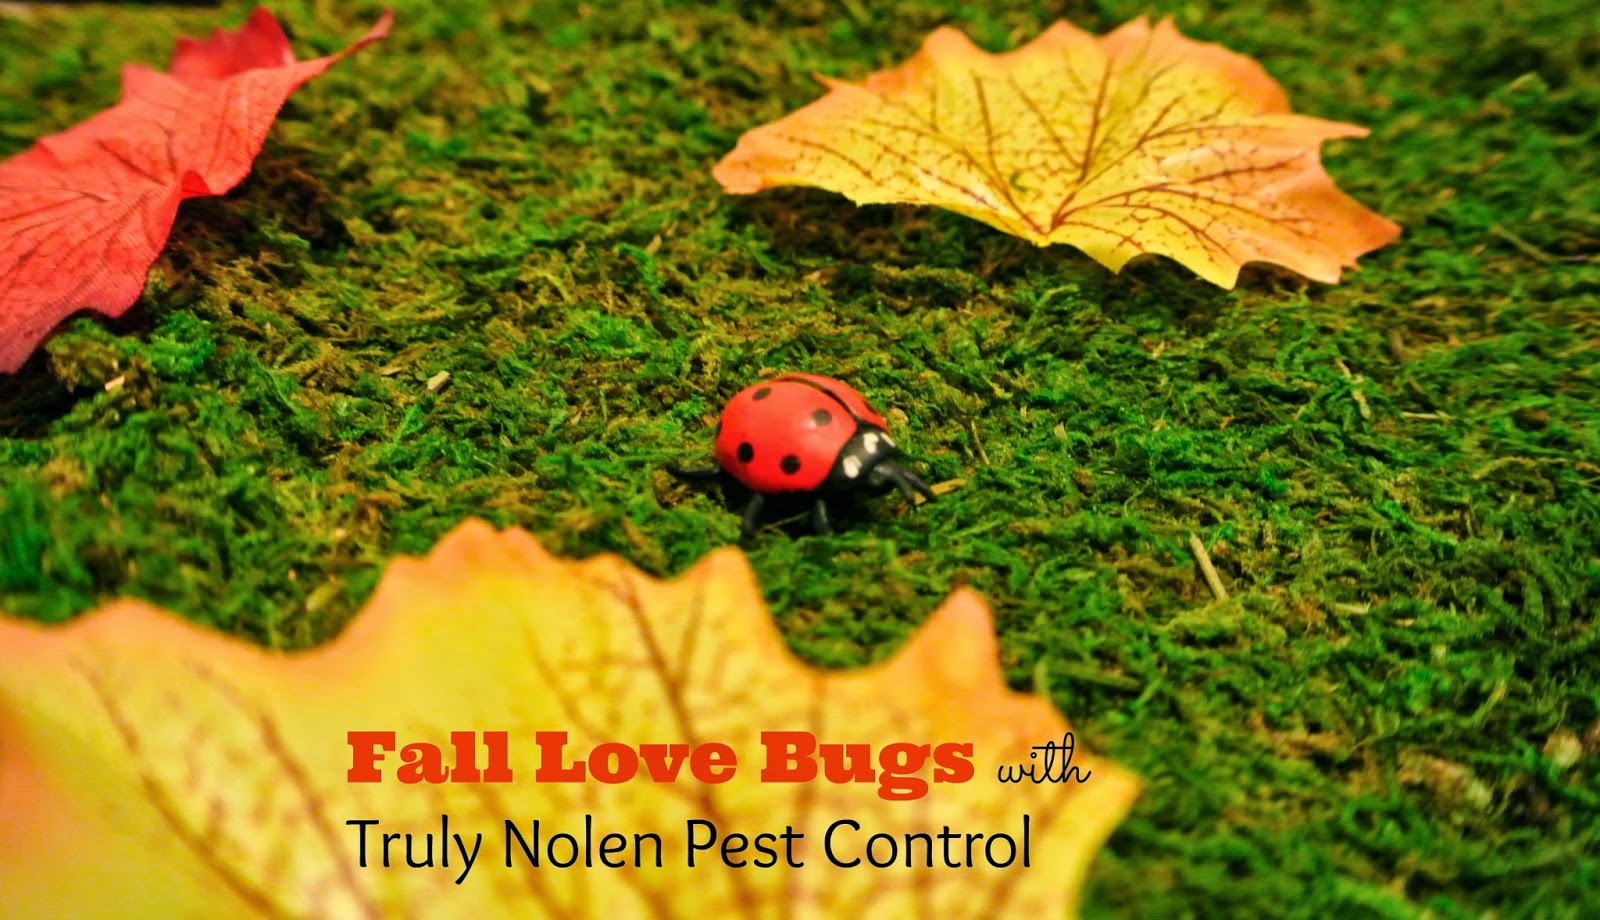 Gardening, Fall Plants, Pests in Gardens